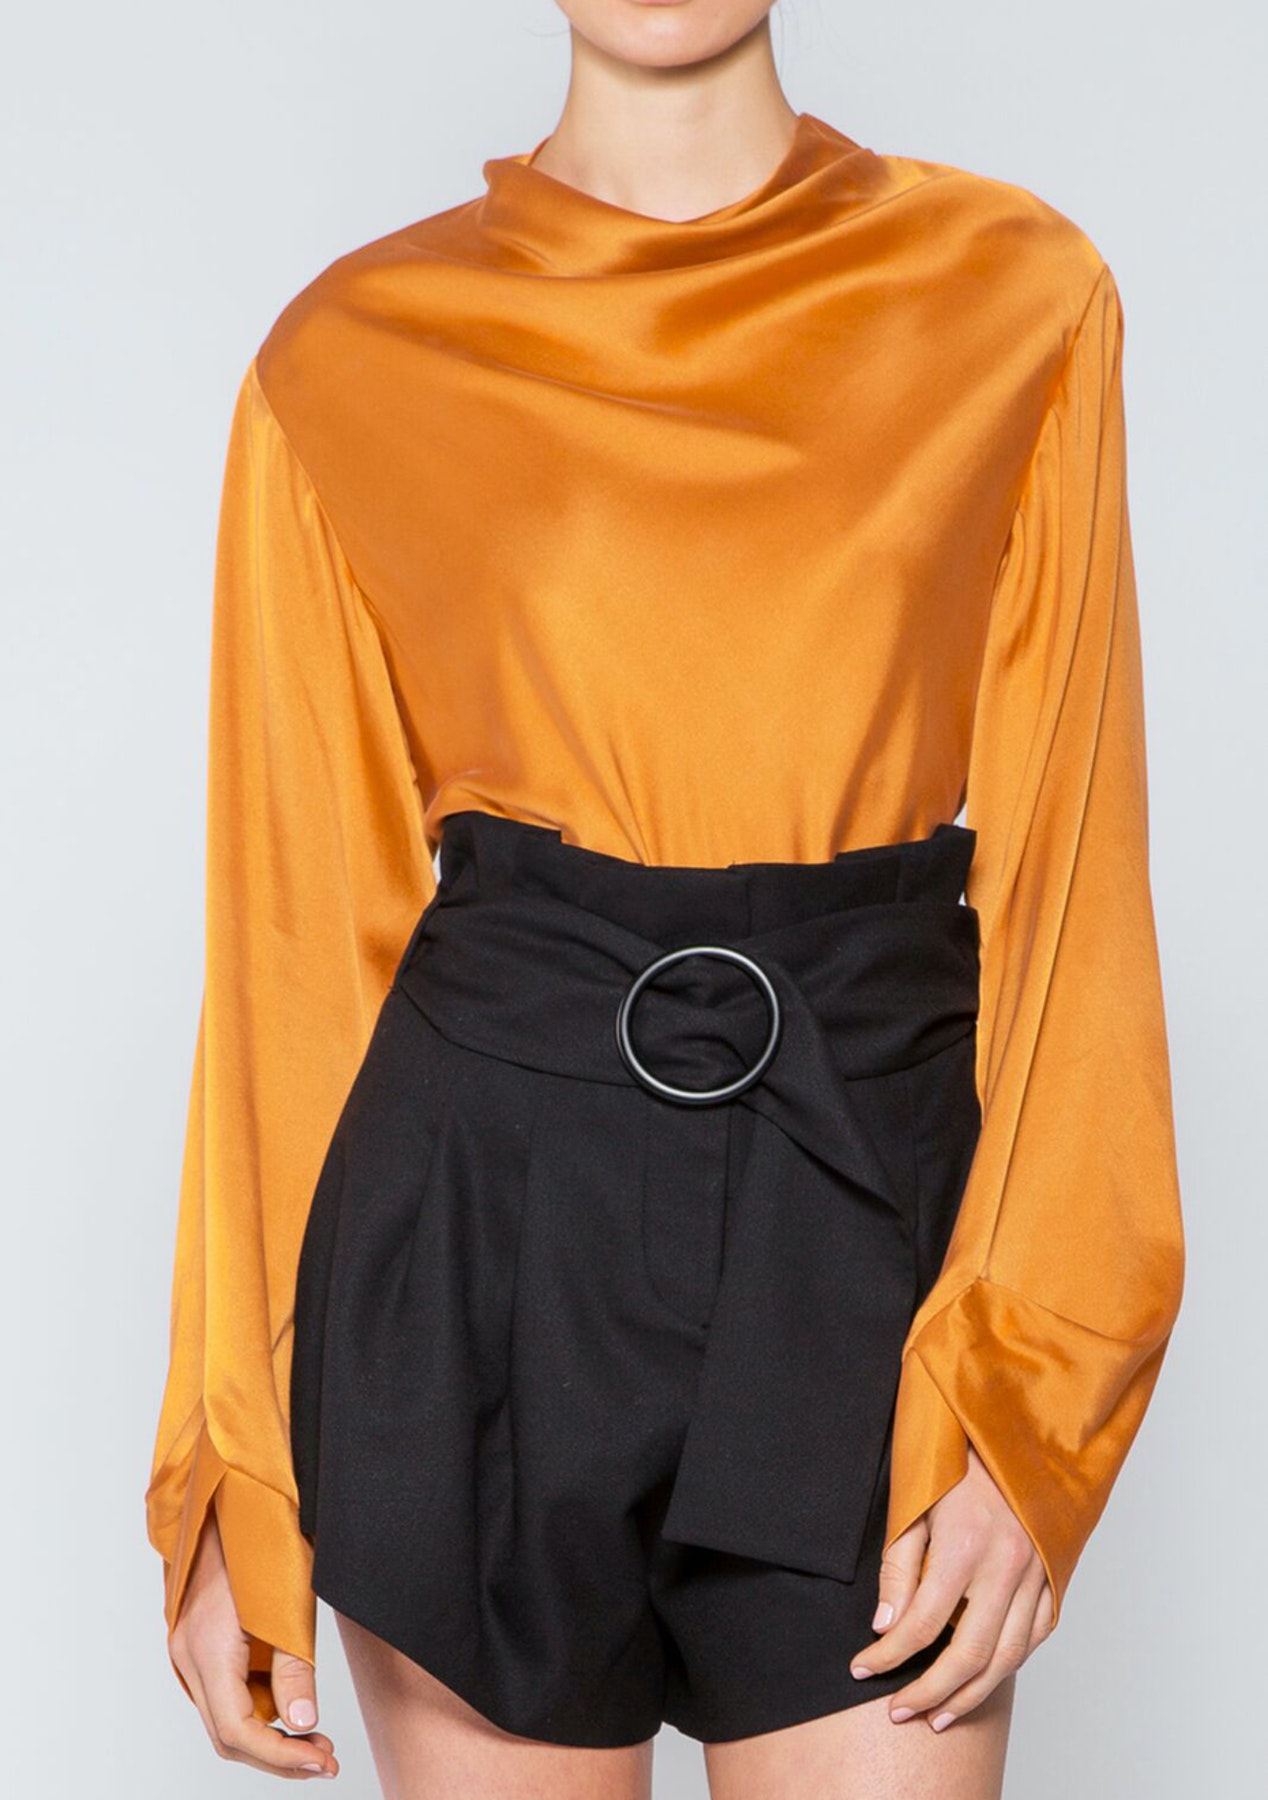 969d13a2426f2 Acler - Maddern Silk Blouse - Persimmon - Acler - Onceit